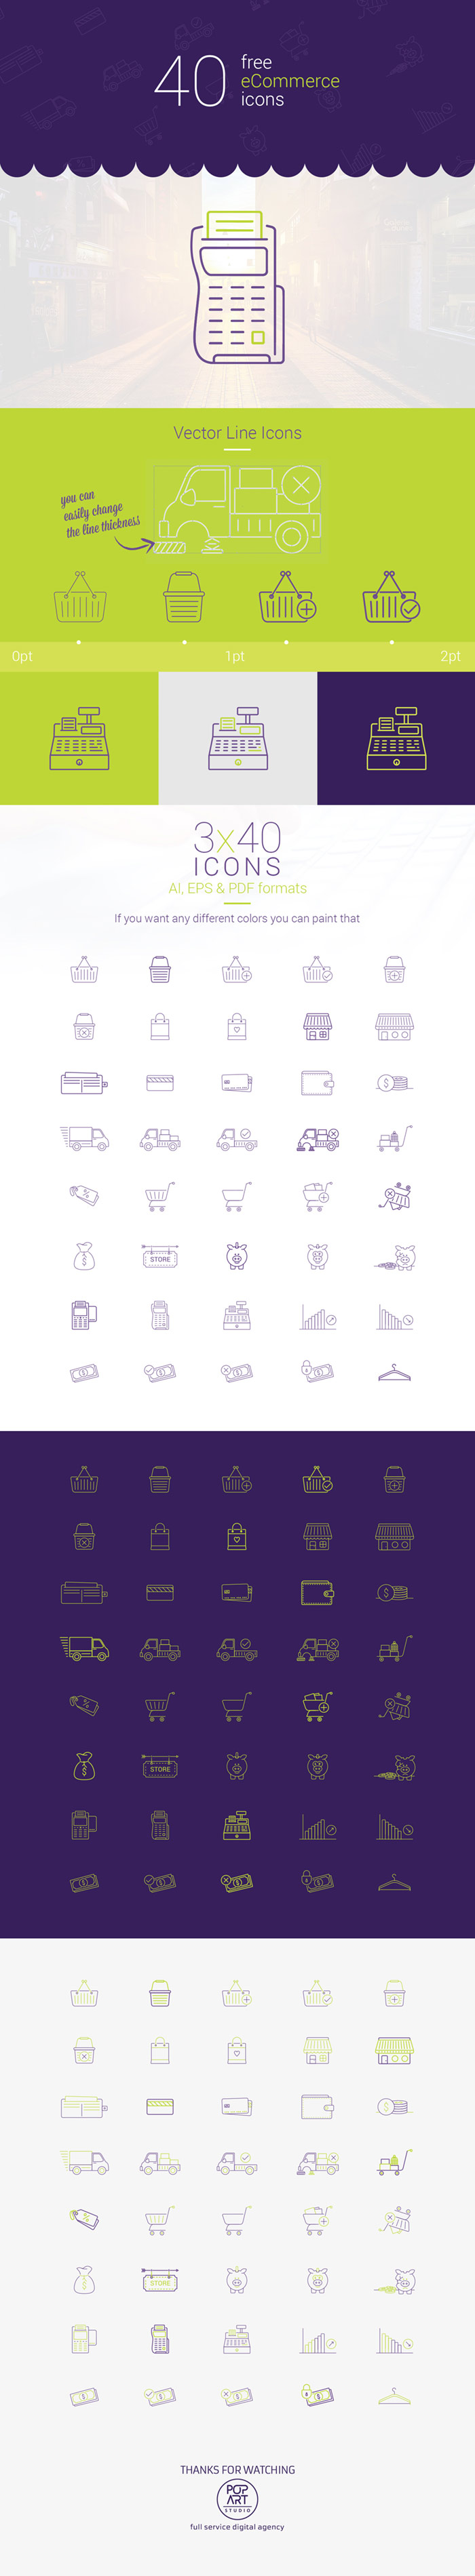 40-free-ecommerce-vector-icons